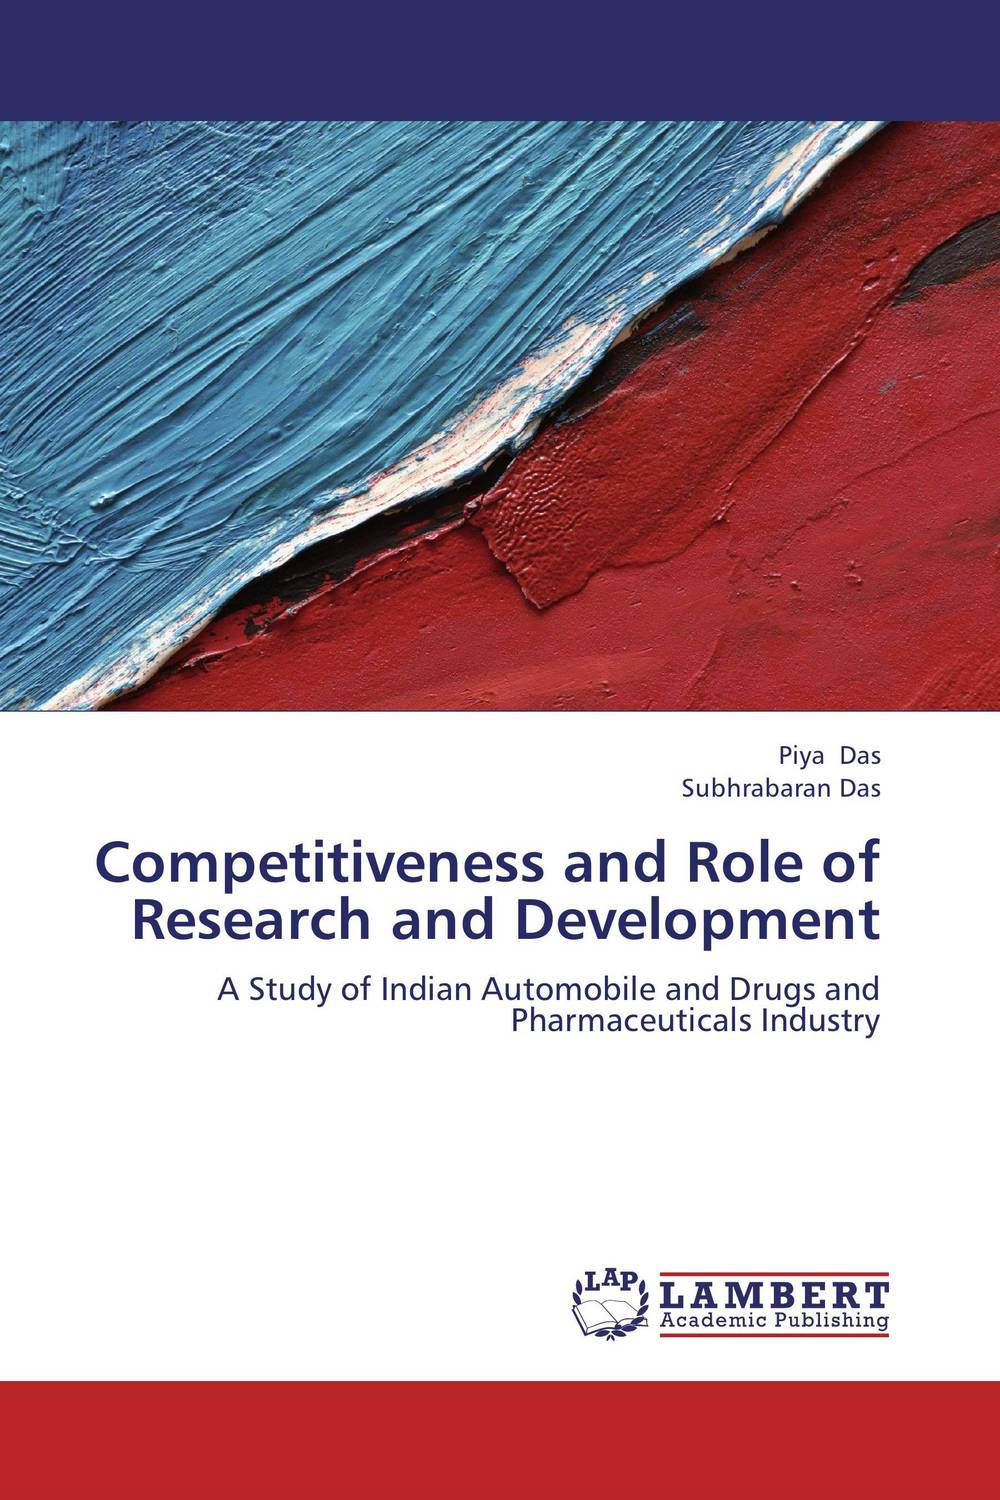 Competitiveness and Role of Research and Development impurity profiling of drugs and pharmaceuticals